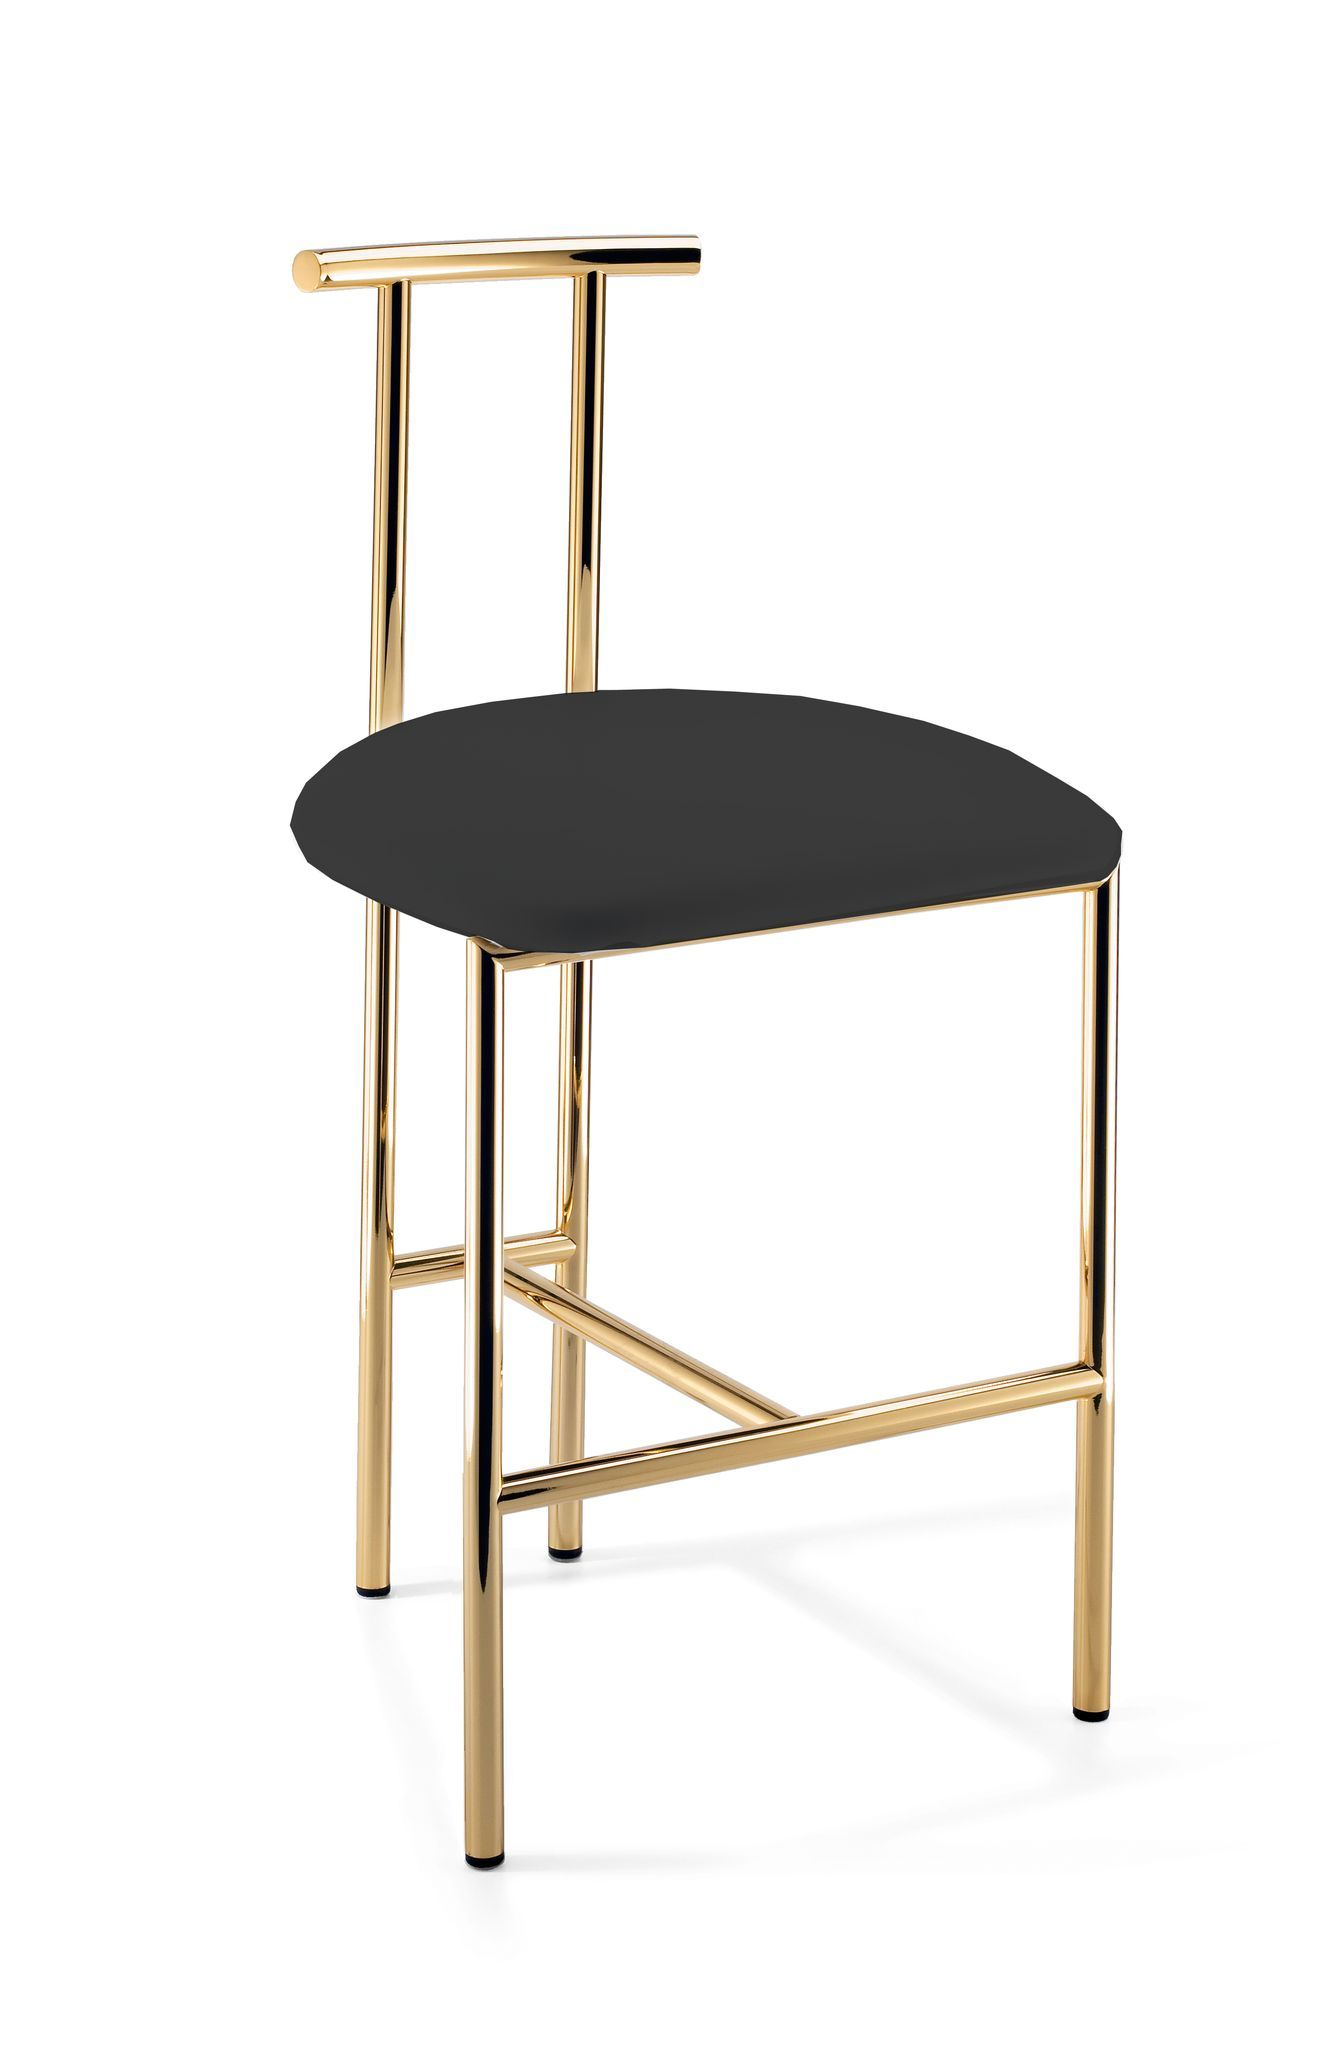 Dwba Vanity Bar Stool Bench, With Brass Metal Legs & Back 185inch